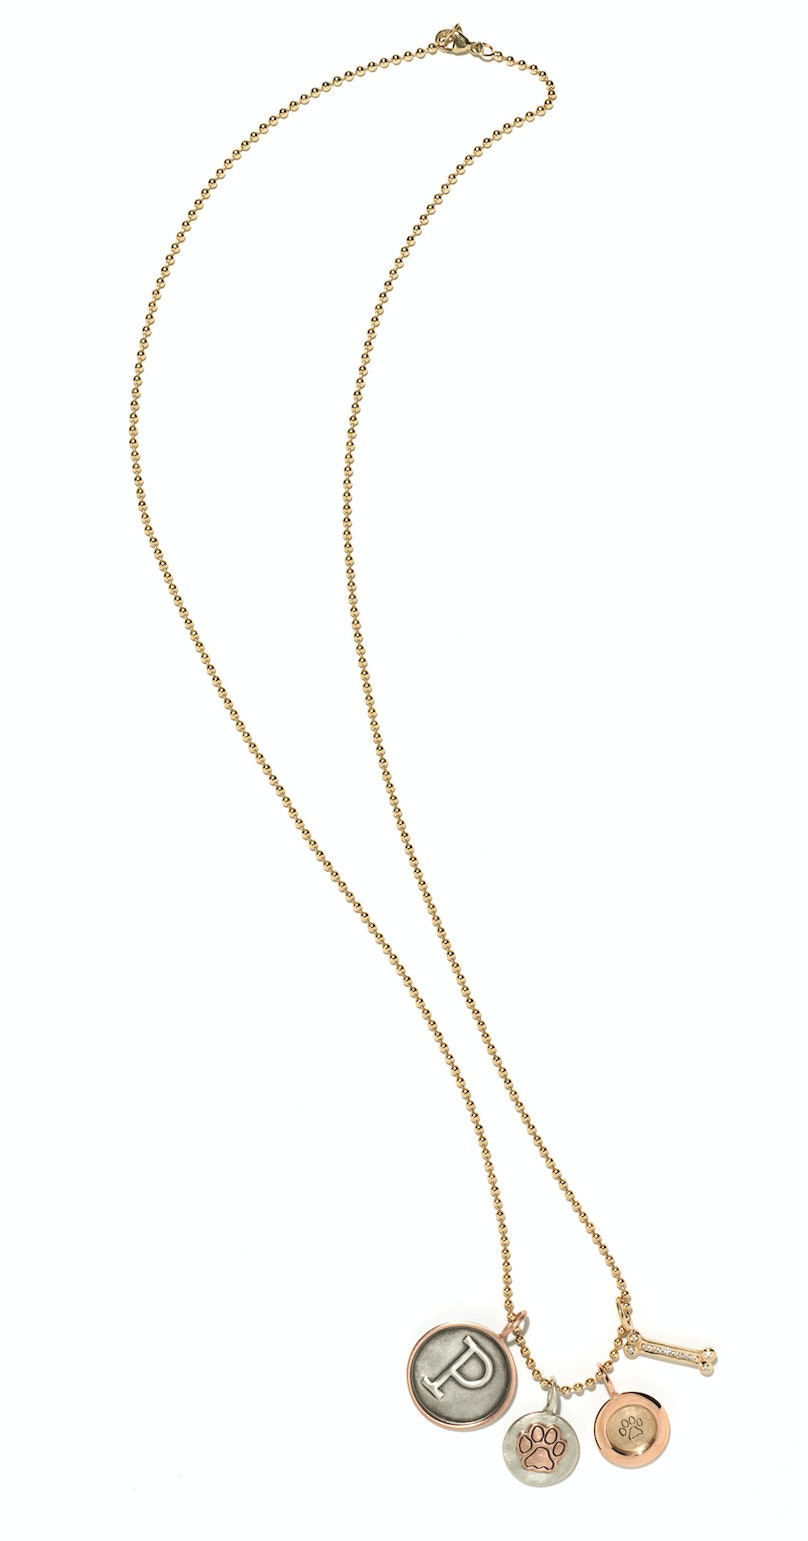 Heather Moore Jewelry gold, sterling silver, and diamond charm necklace, $5,495, heathermoorejewelry.com.